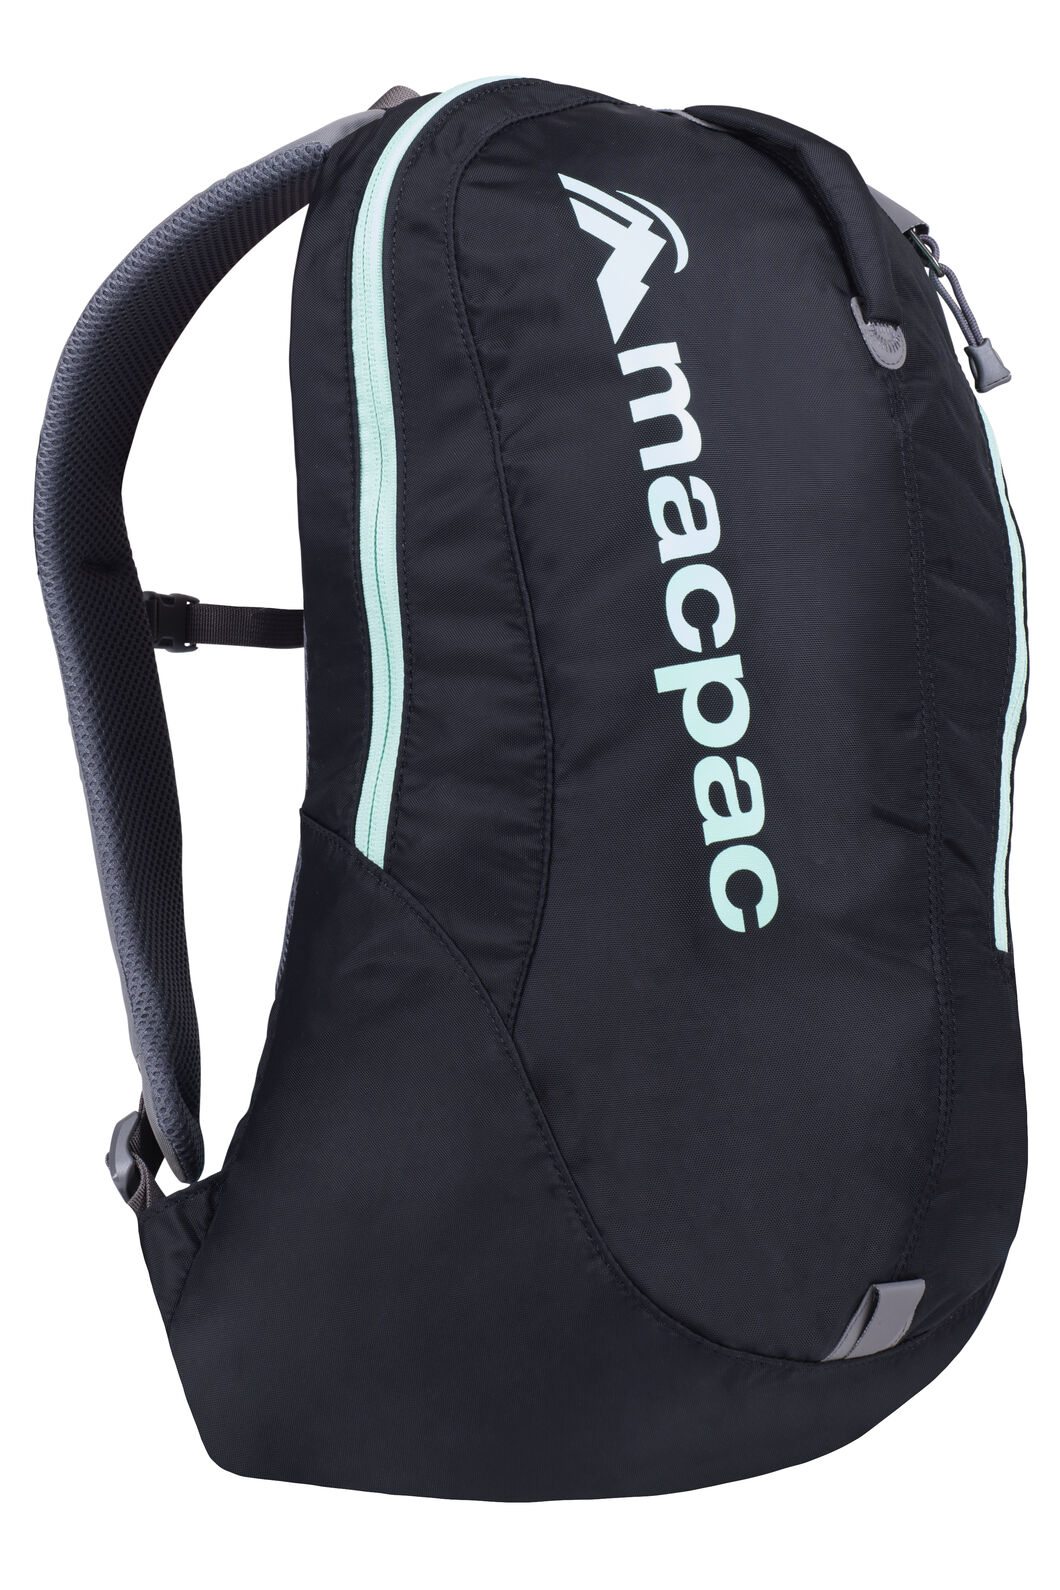 Kahuna 1.1 18L Backpack, Black/Ice Green, hi-res